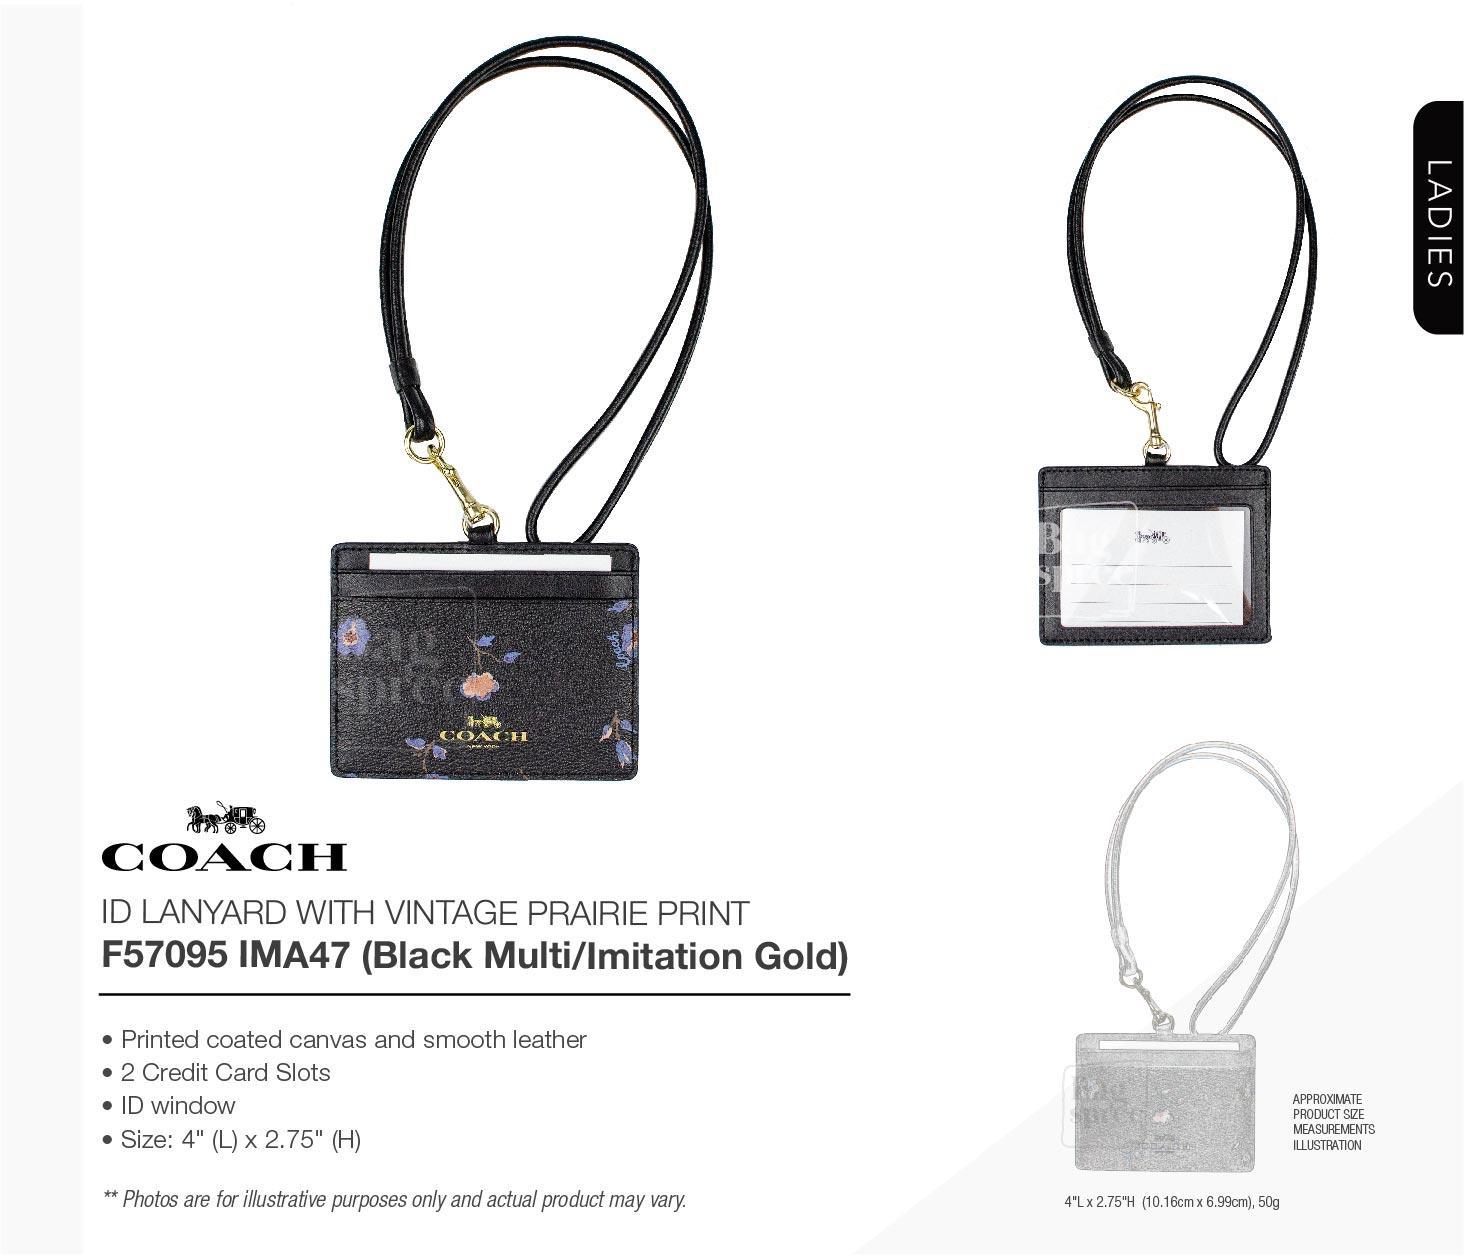 298dfc79 *Authentic & Brand New* Coach ID Lanyard F63274 F57095 [Gift Receipt  Provided] [OL]